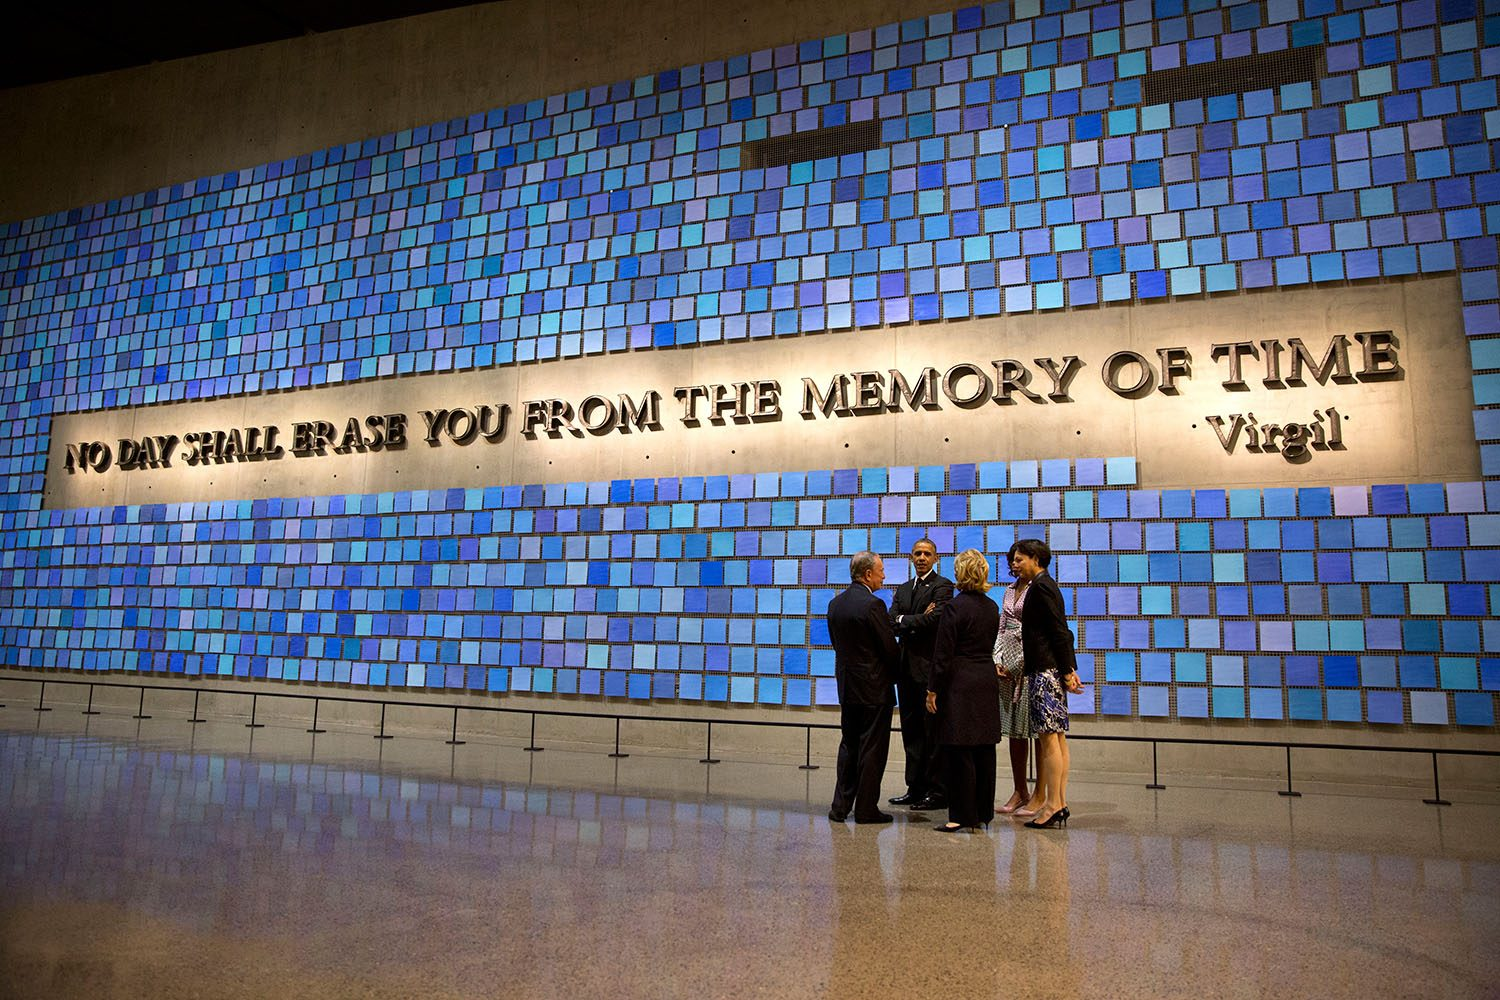 President Barack Obama and First Lady Michelle Obama talk with former New York City Mayor Michael Bloomberg, his partner Diana Taylor, and former Secretary of State Hillary Rodham Clinton as they stand near the Virgil Wall during a tour of the National September 11 Memorial & Museum, in New York, N.Y., May 15, 2014. (Official White House Photo by Pete Souza)